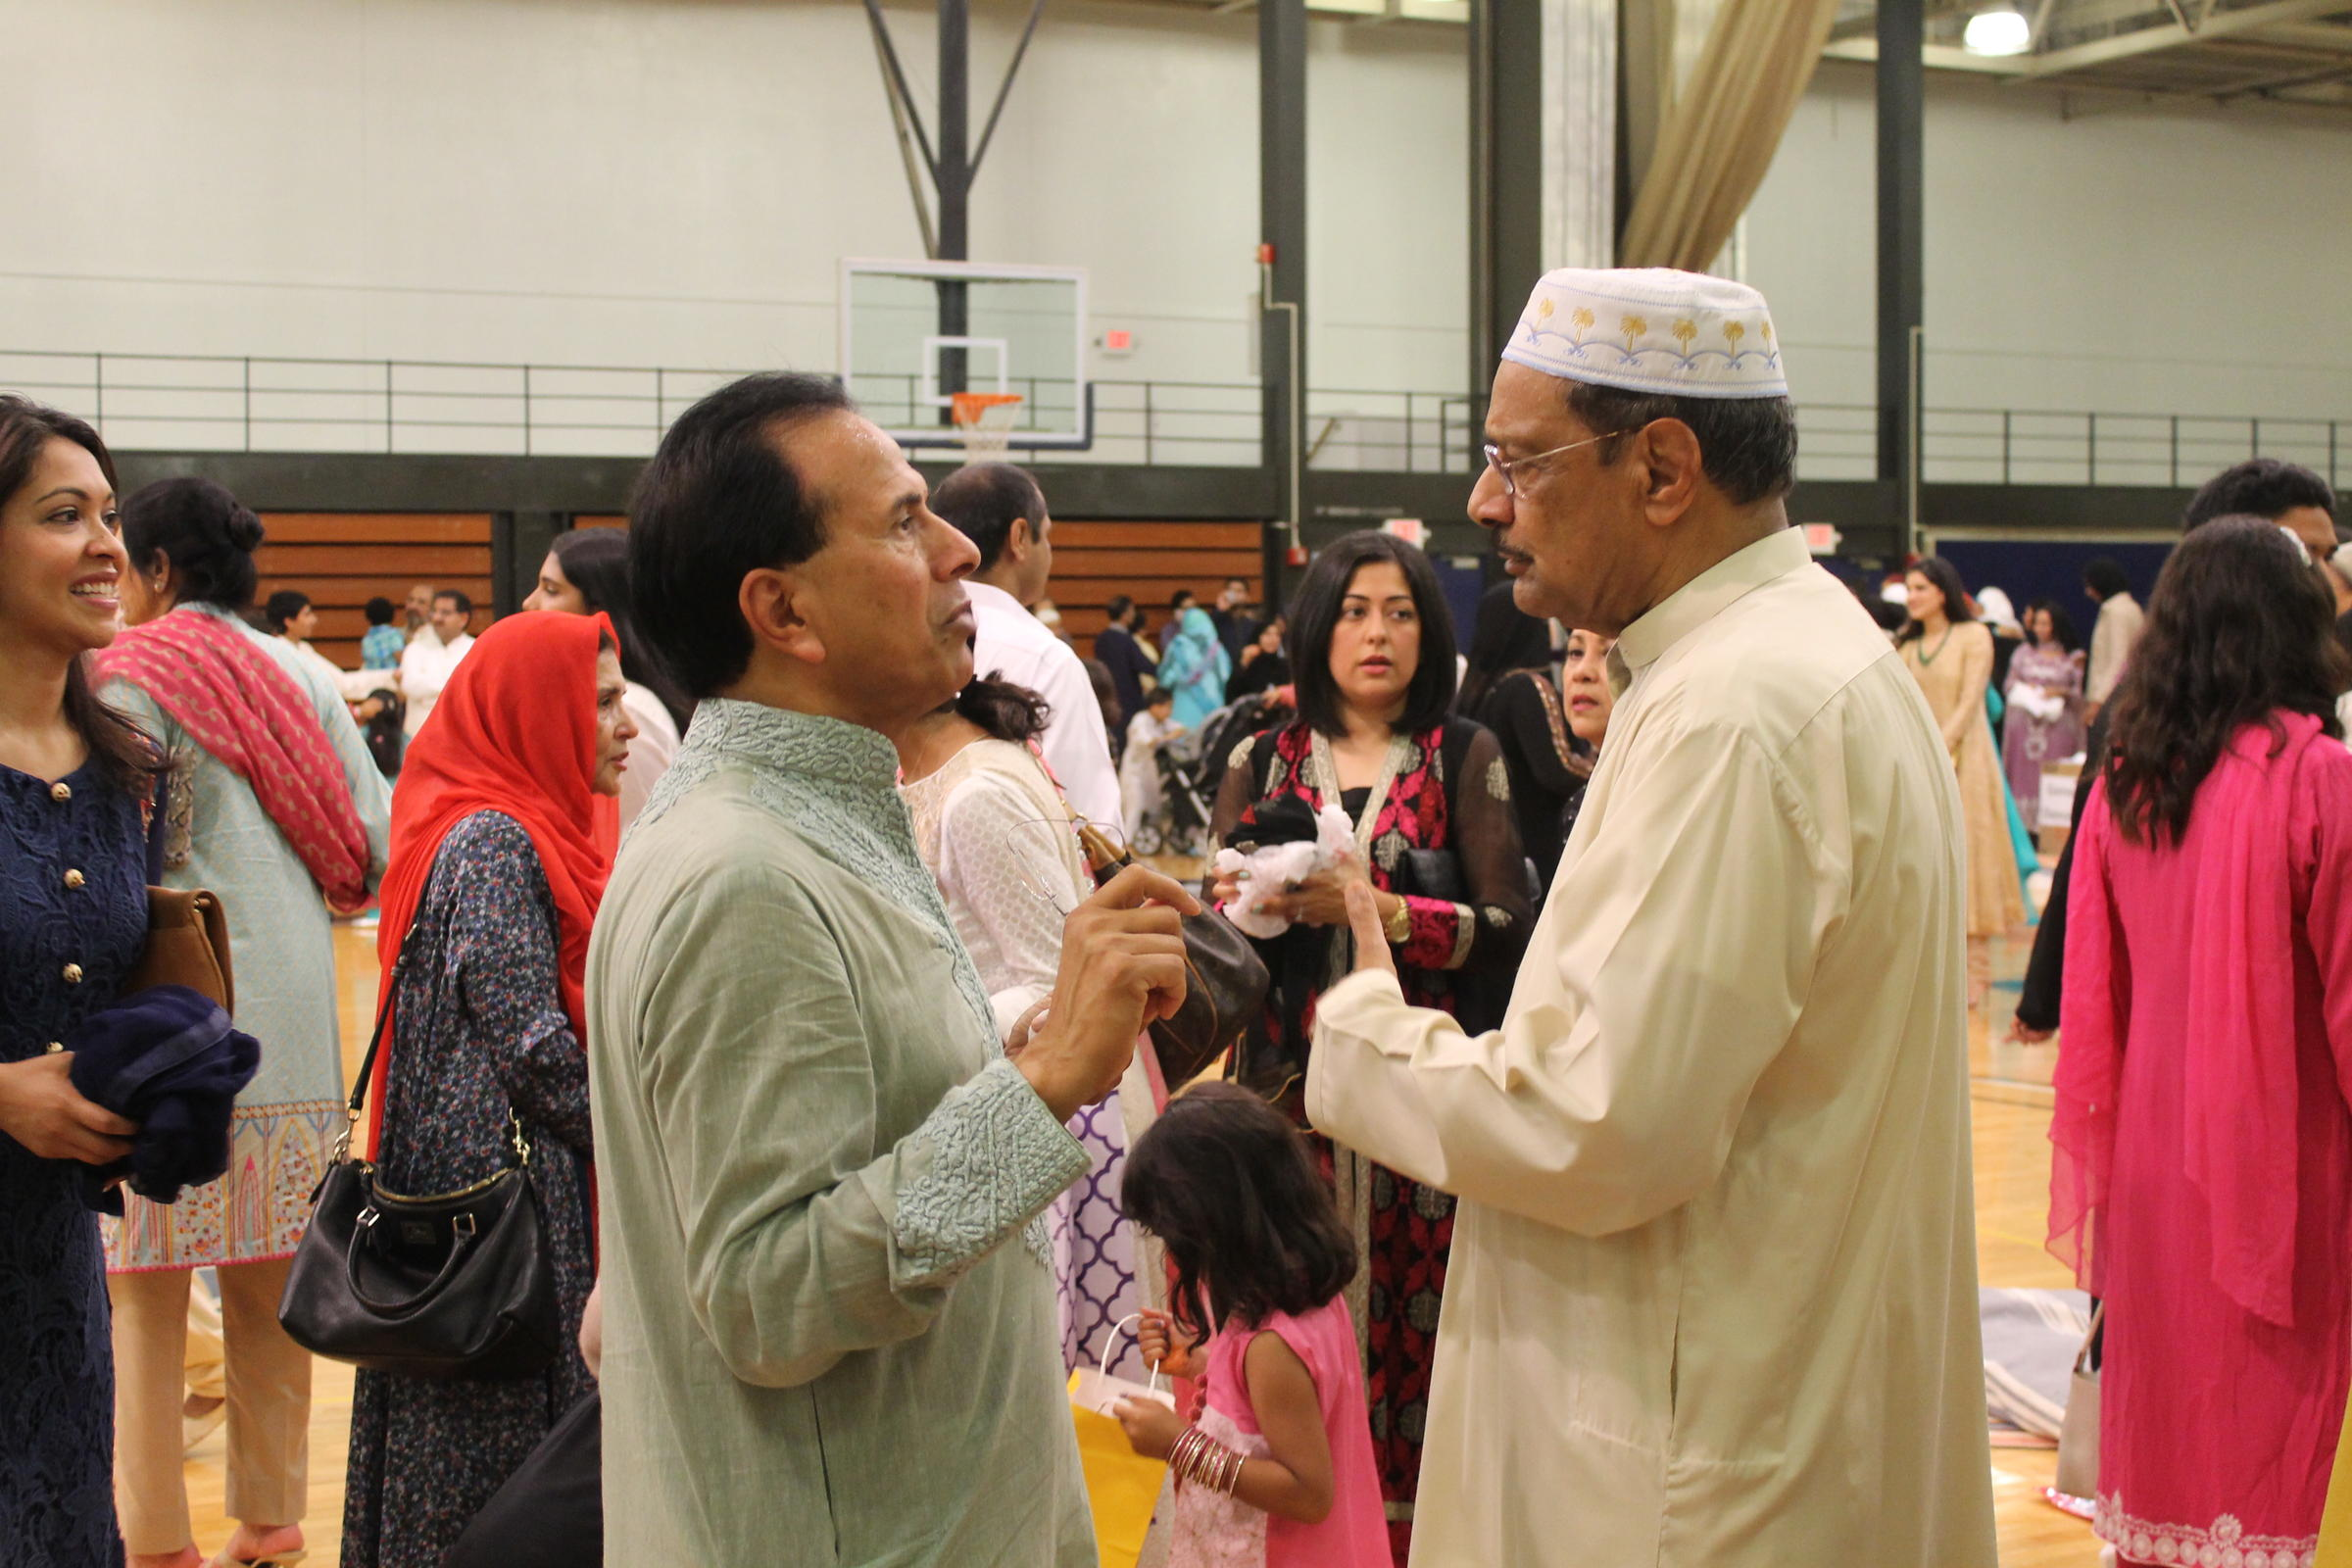 Reflections on ramadan st louis muslims celebrate break the fast people greet and congratulate each other on completing the ramadan fast after the islamic foundation of greater st louis eid prayer service in the gym of m4hsunfo